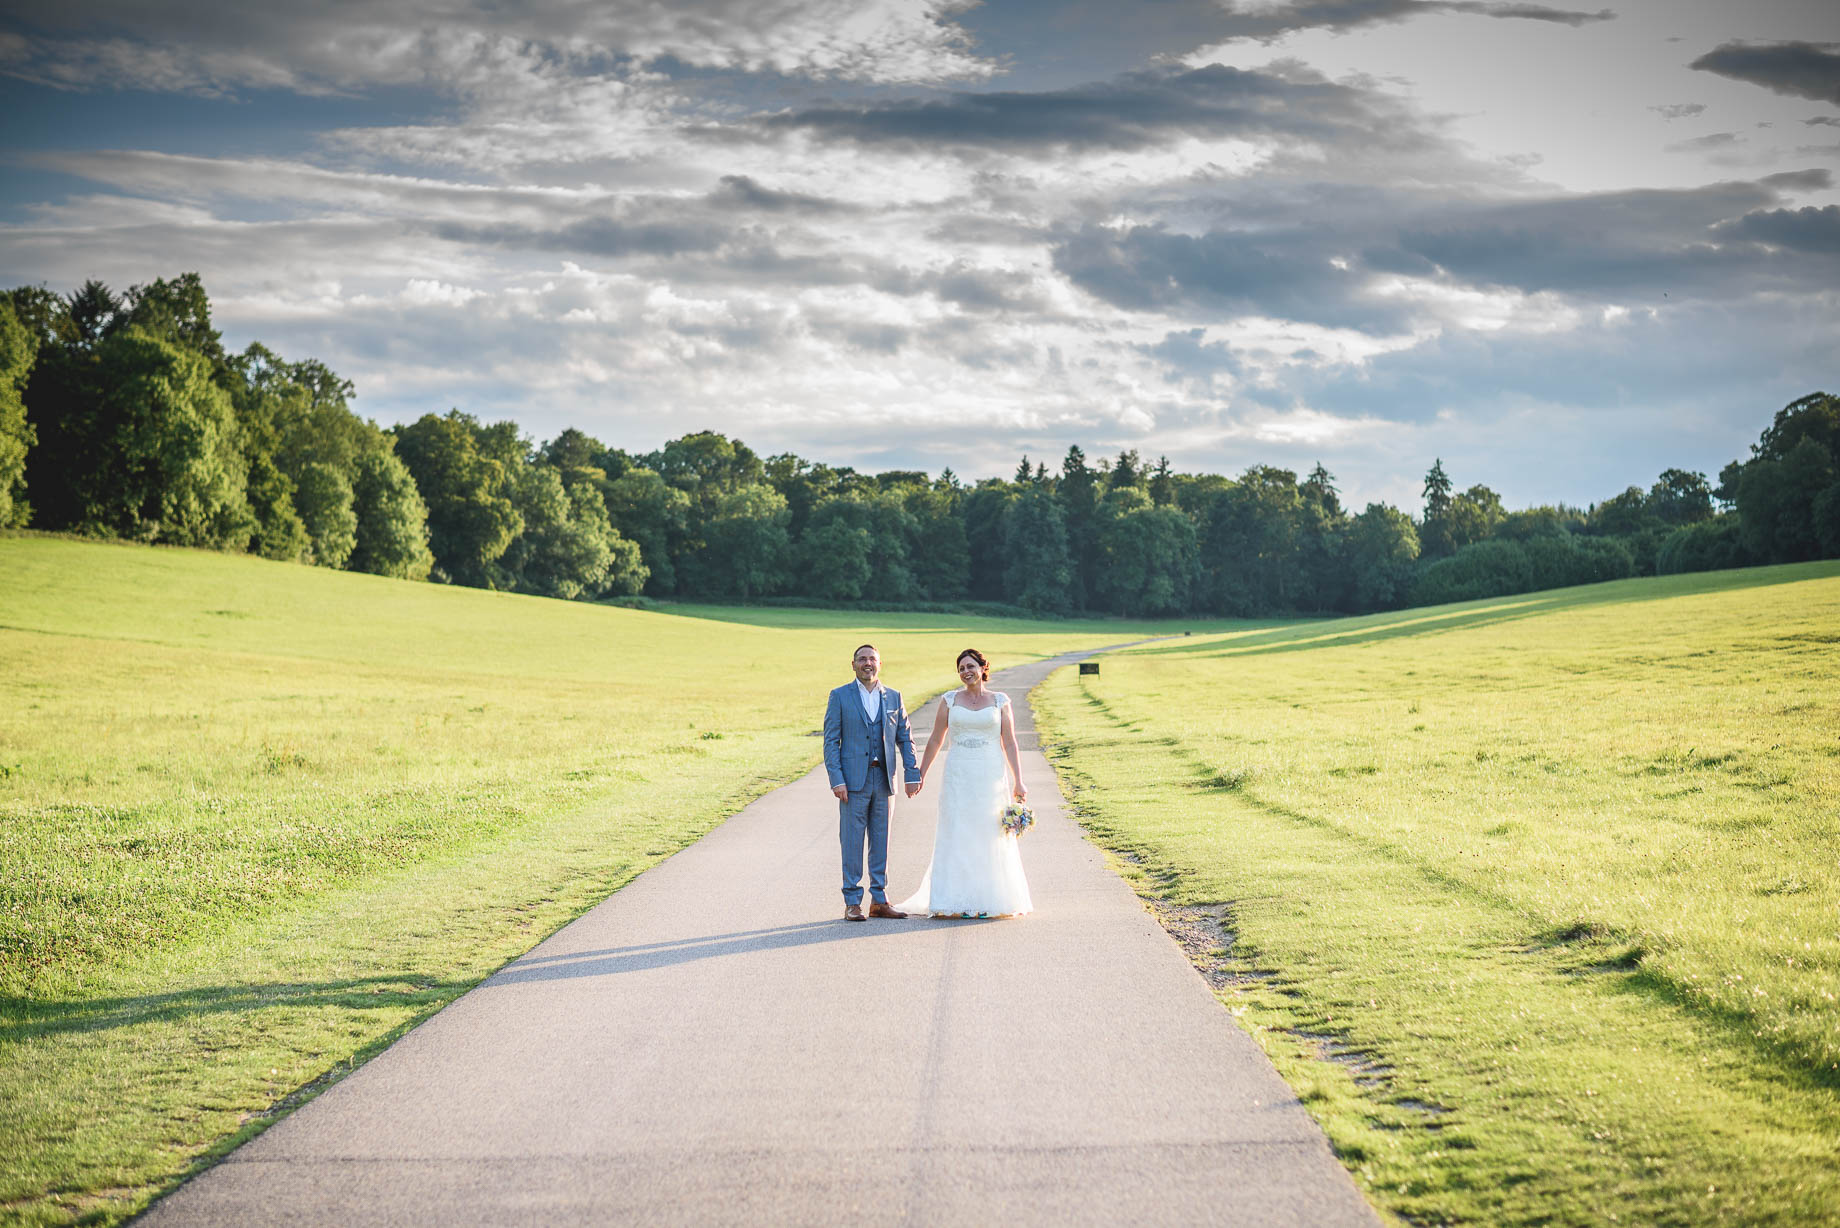 Luton Hoo wedding photography by Guy Collier Photography - Lauren and Gem (150 of 178)